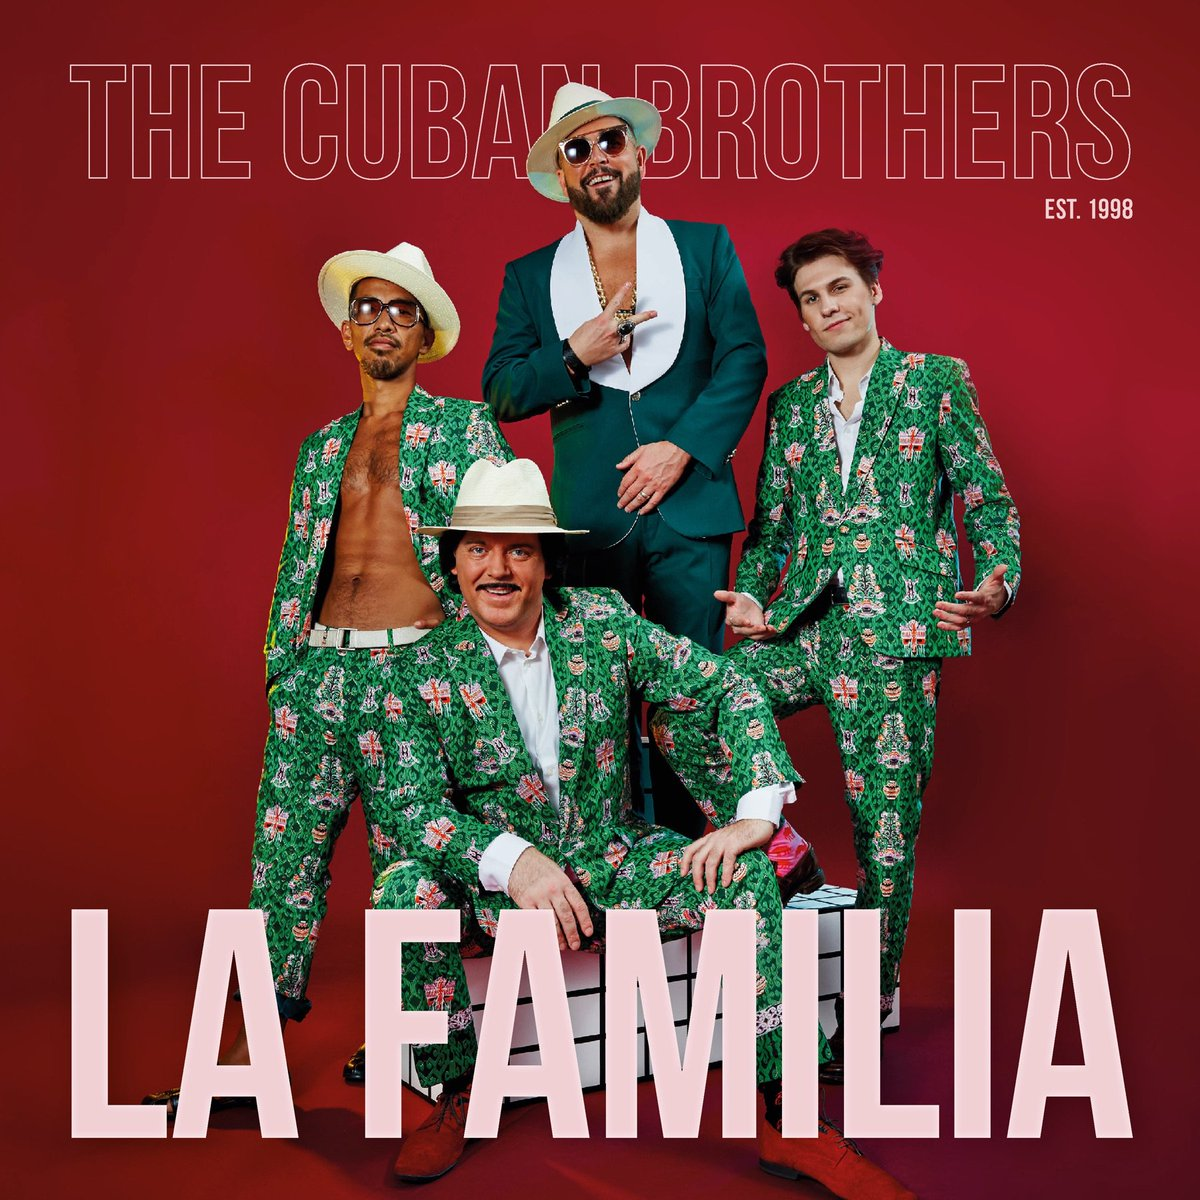 The new album by The @cubanbrothers is OUT NOW on our sister label @SundayBestRecs and it is amazing! Get your copy now: https://t.co/1TfE3oqe2P https://t.co/7I9jw9YTV7